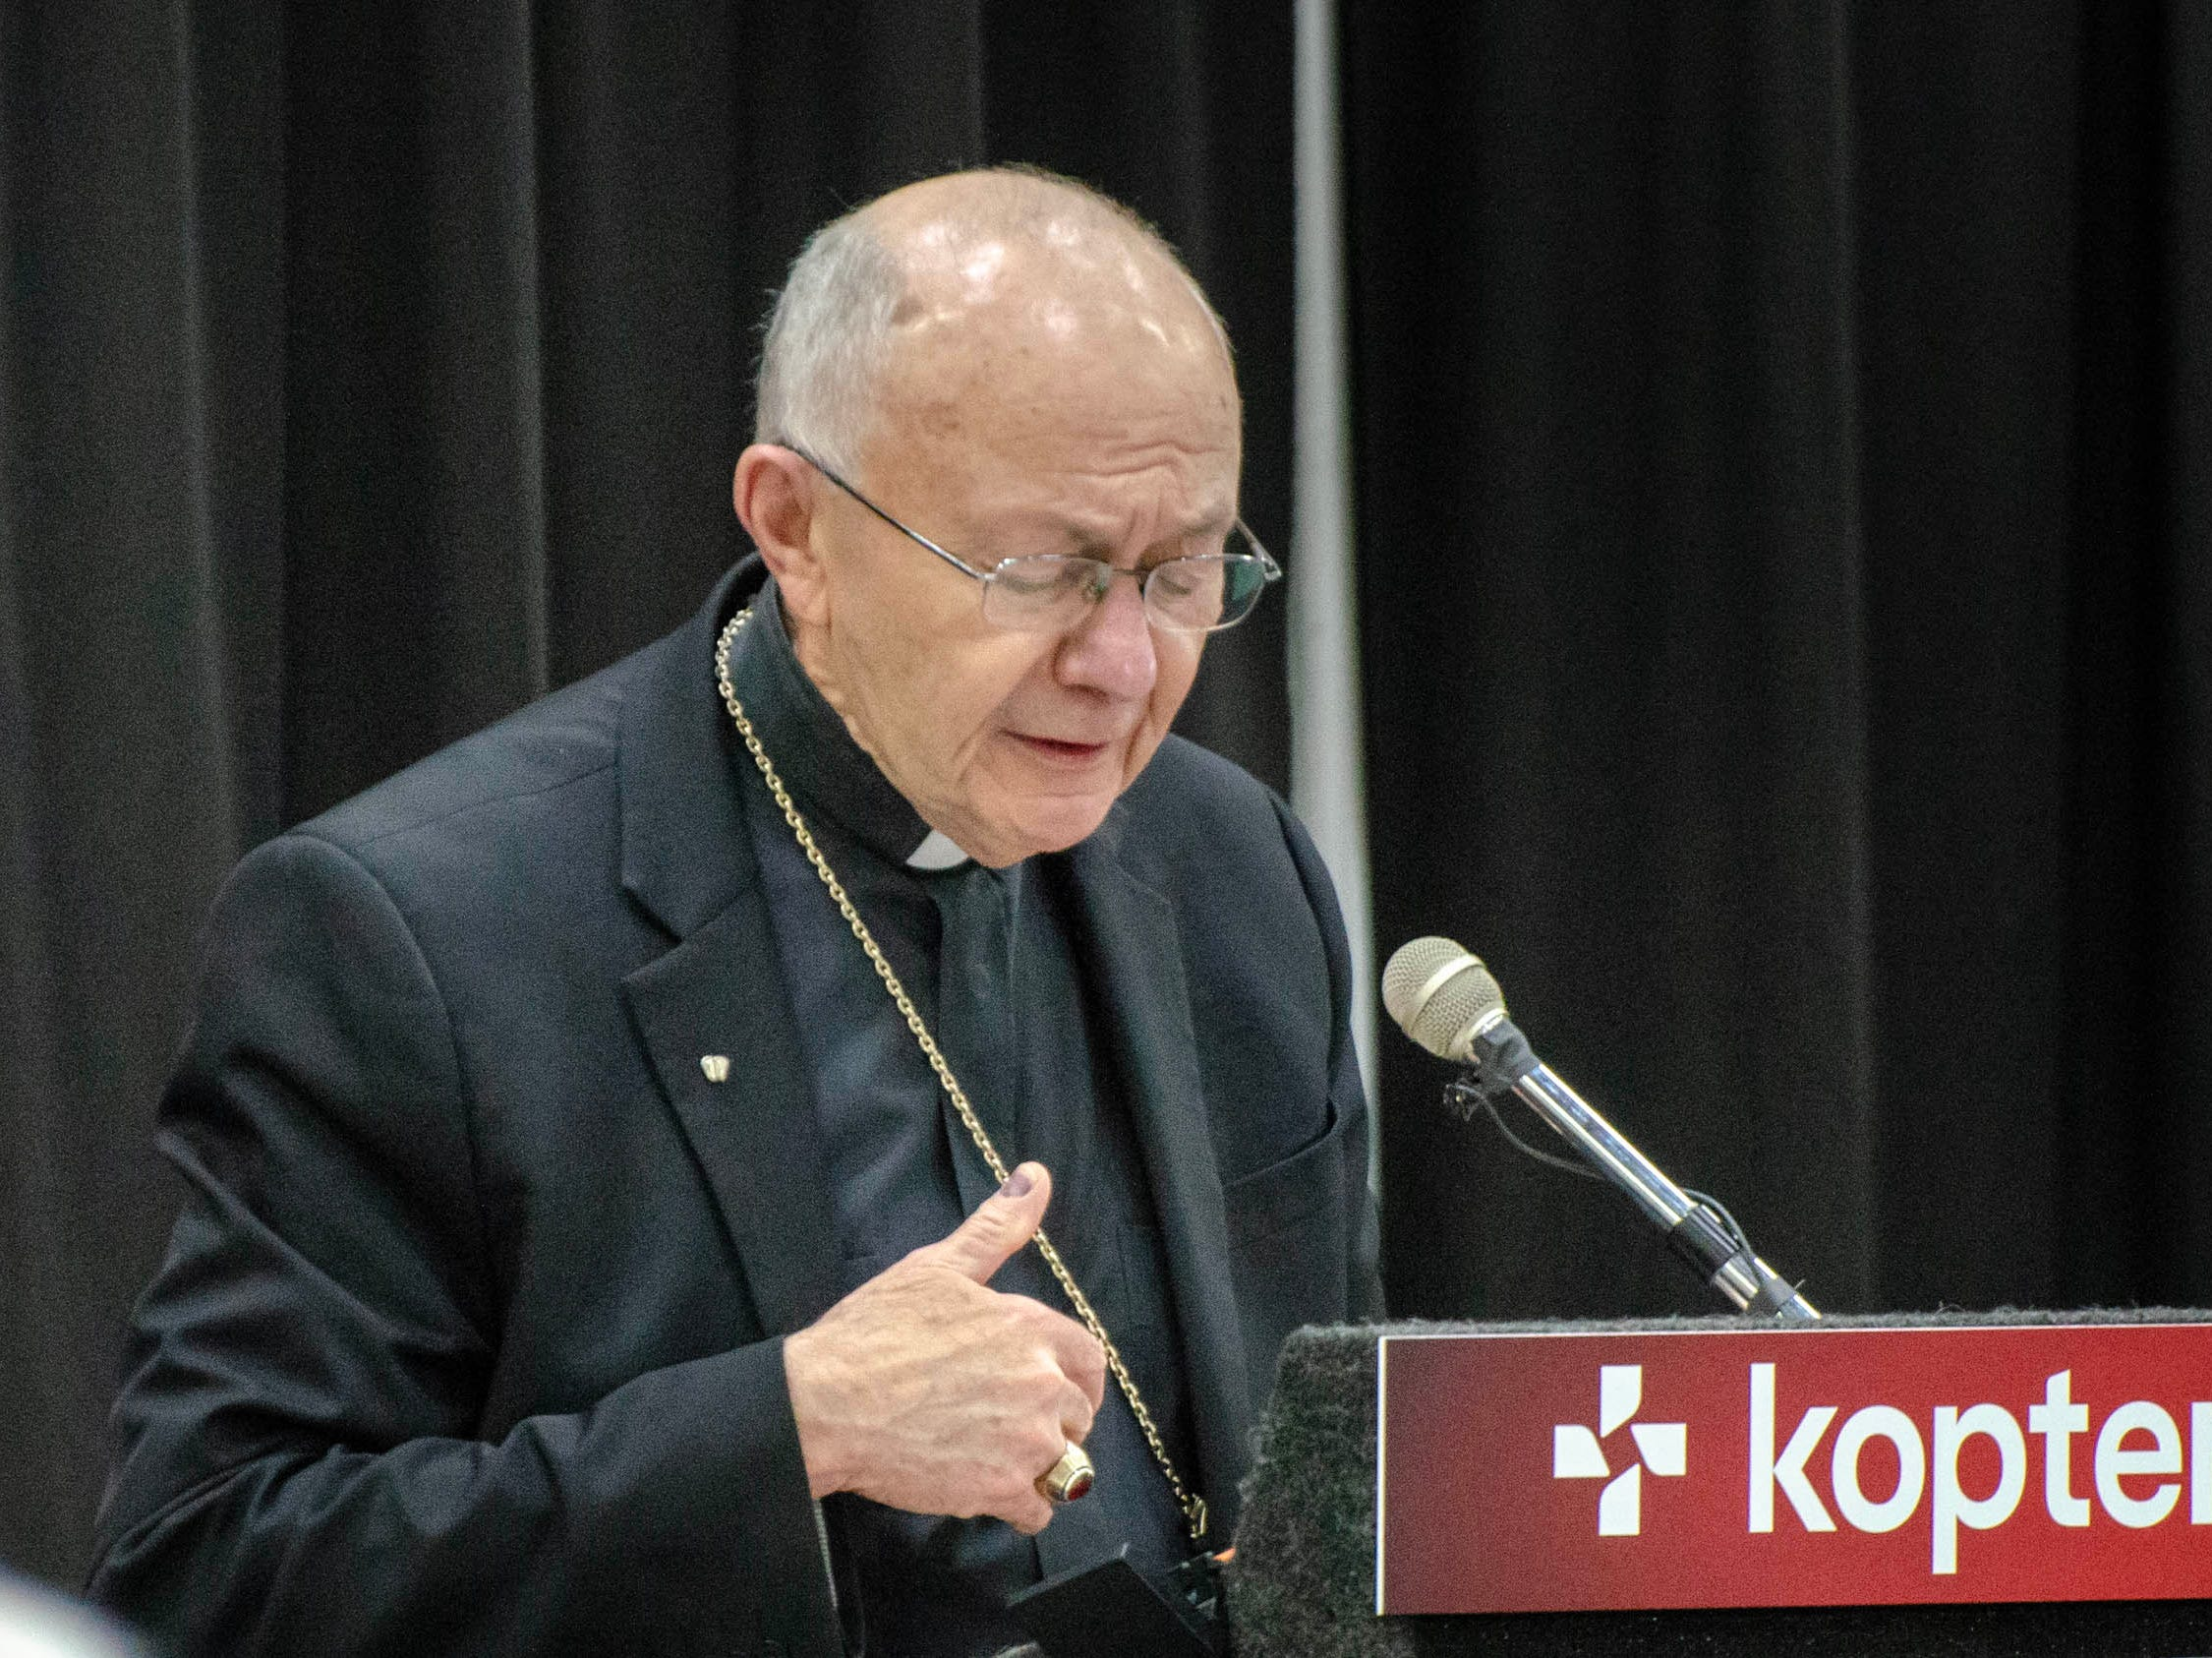 Bishop J. Douglas Deshotel opens the conference with a prayer at the Kopter Manufacturing Faciltiy Dedication.